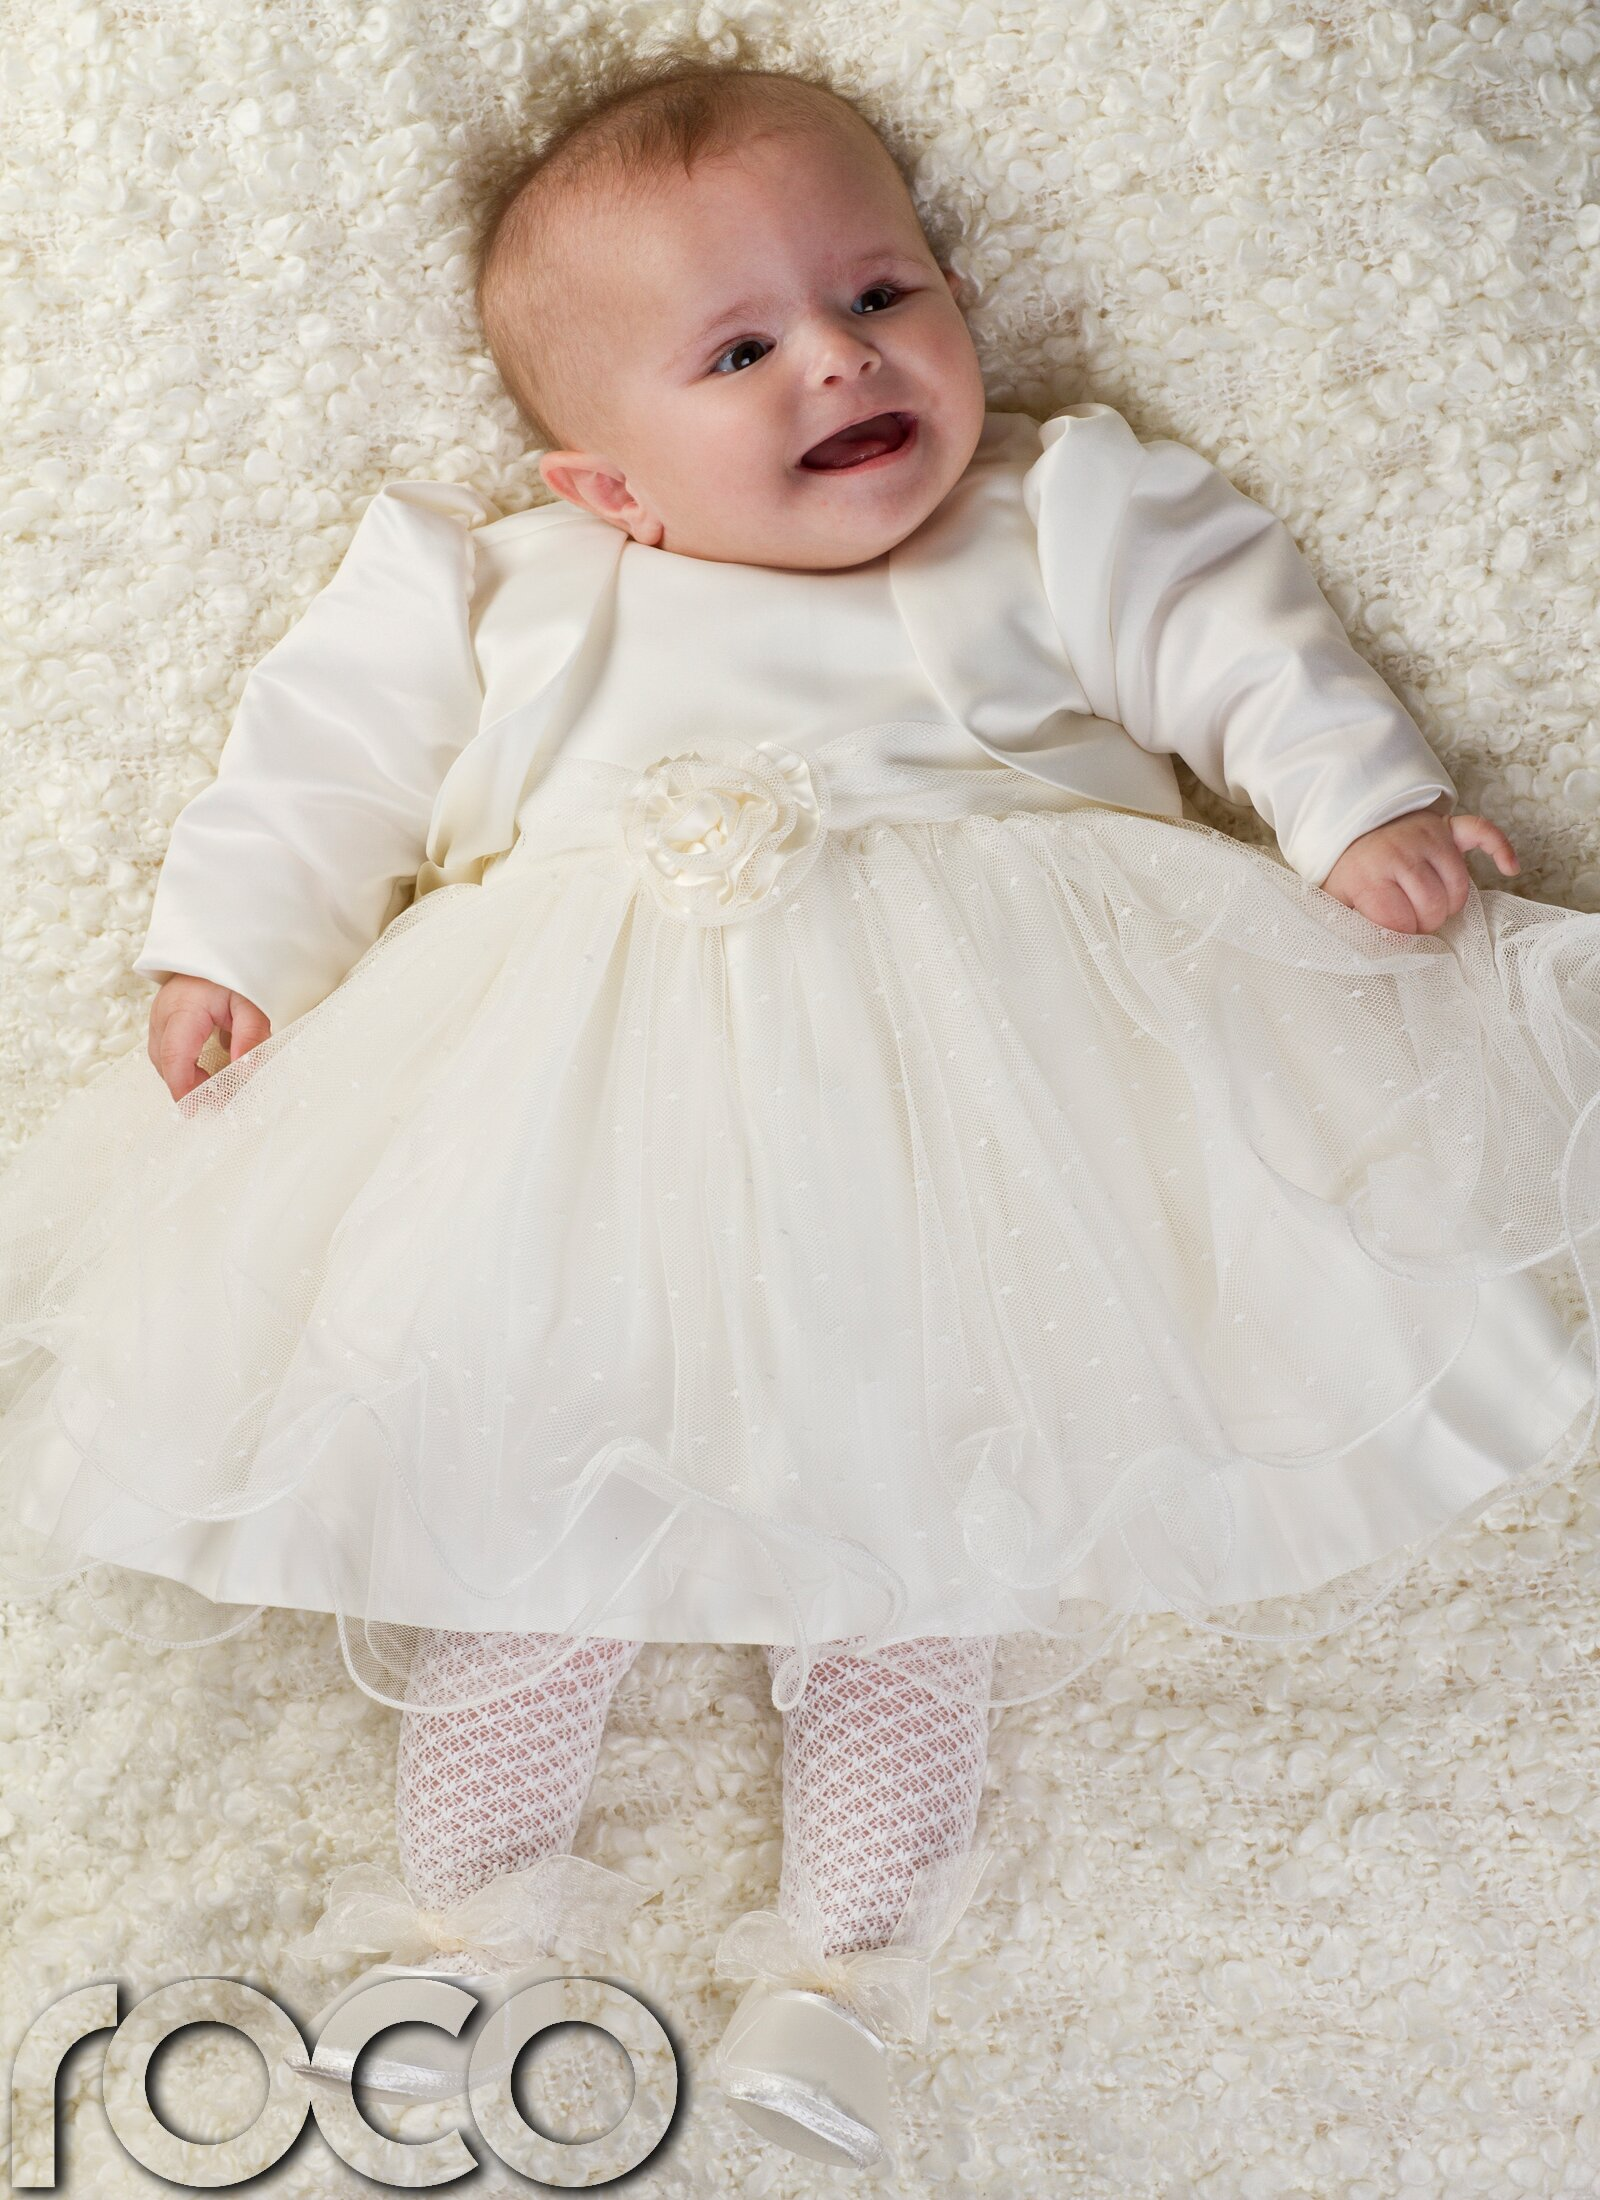 wedding dresses for baby girl pictures ideas guide to